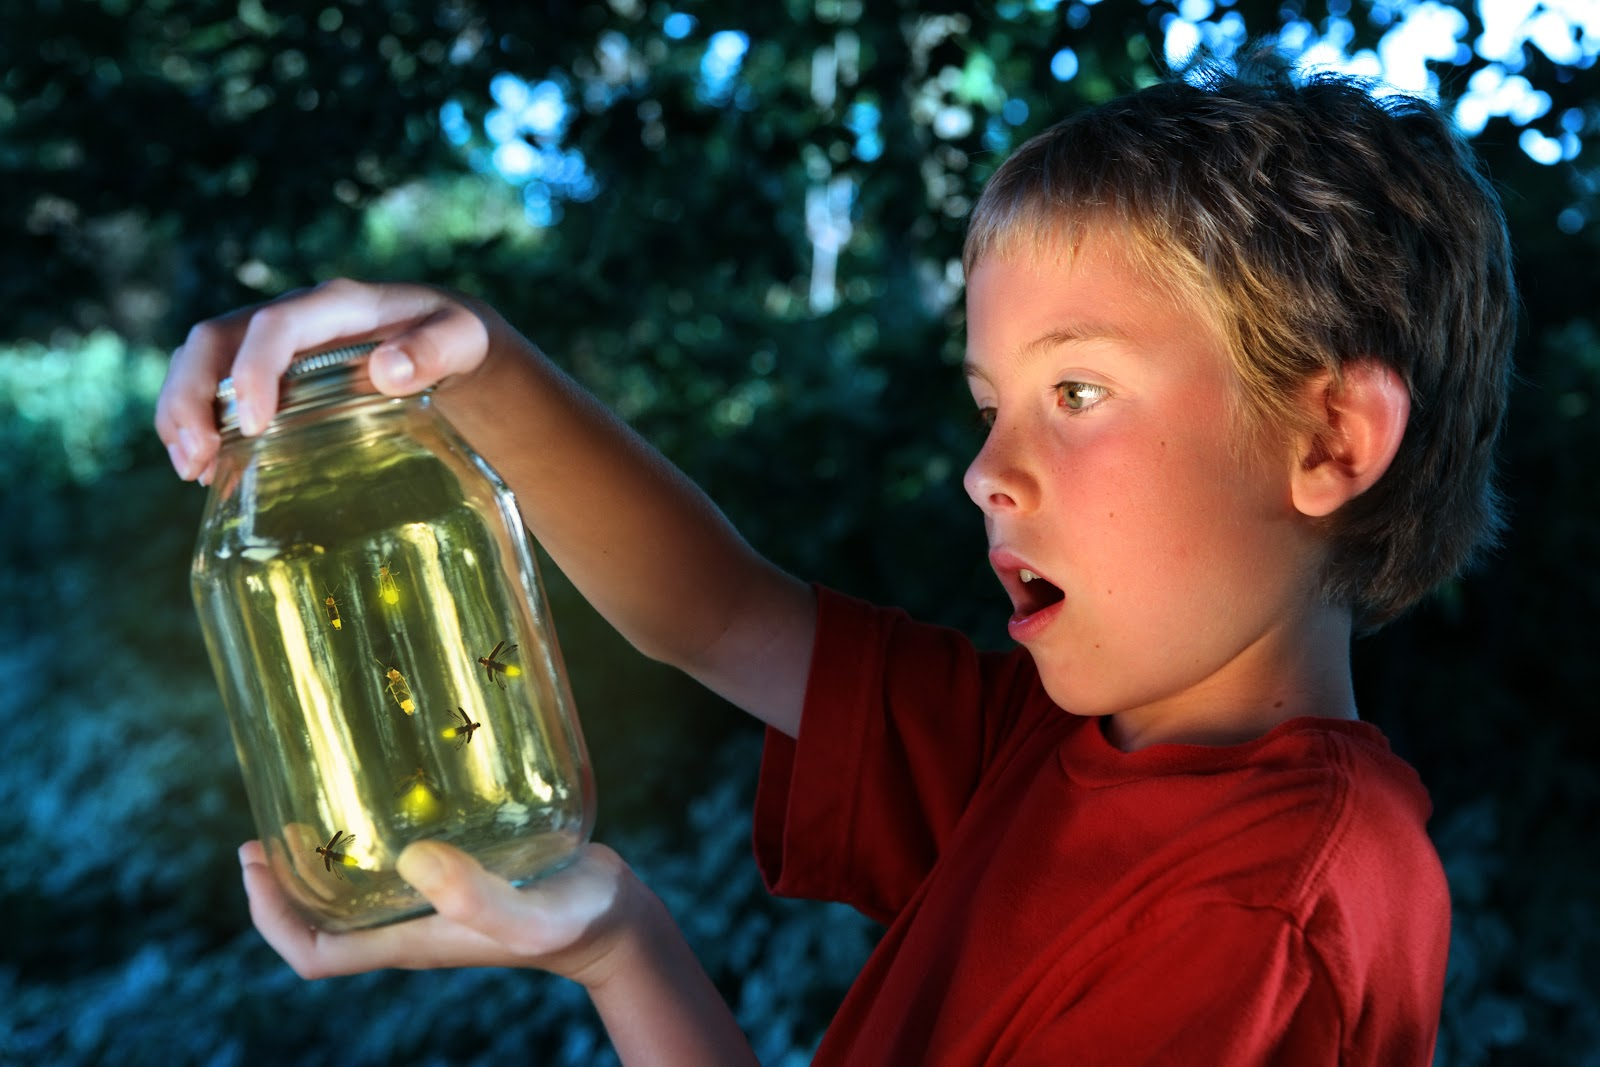 A young boy looking in awe at fireflies caught